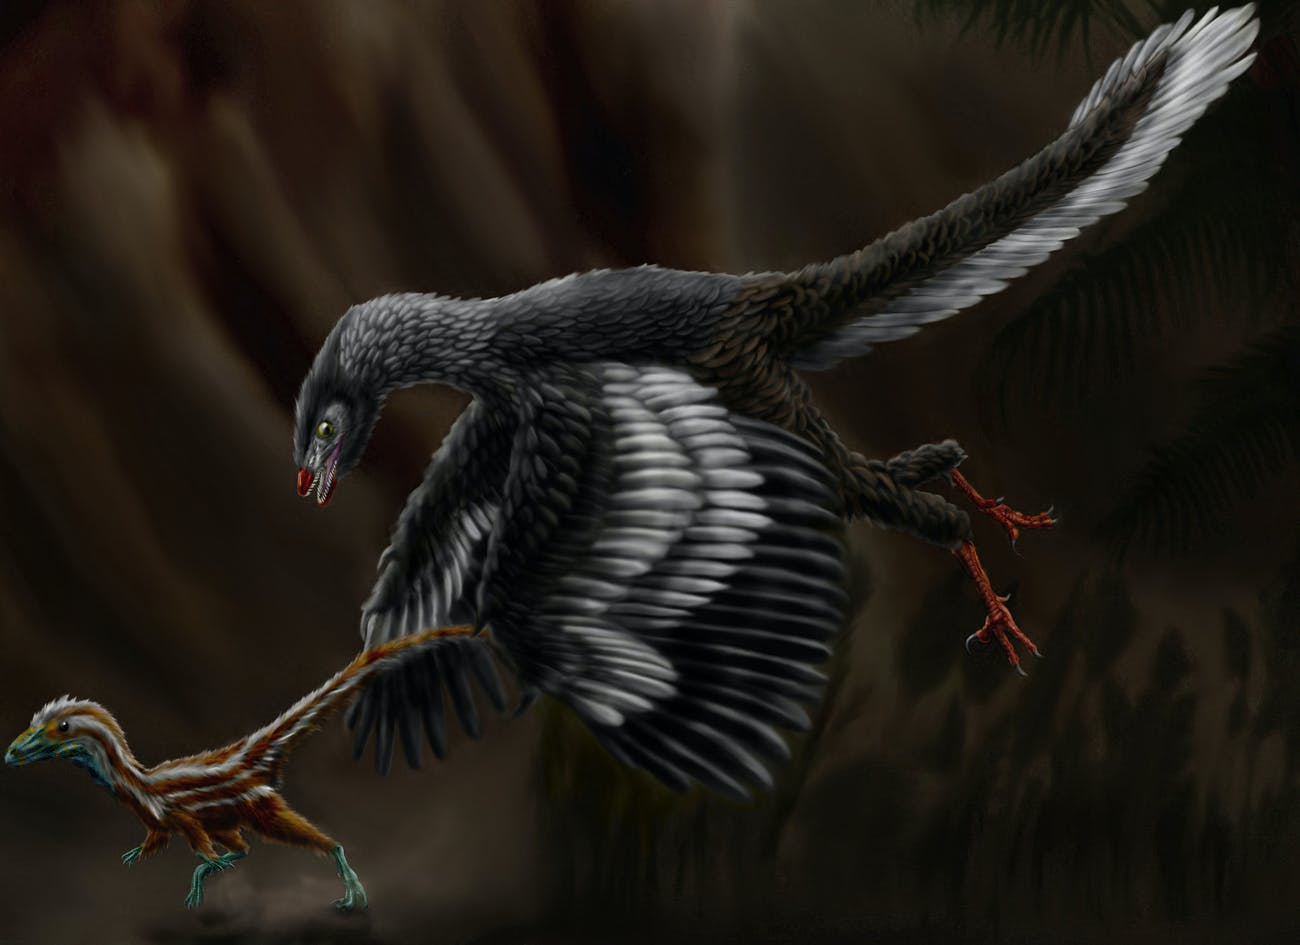 Scientists Are Reverse Engineering A Dinosaur From Chicken Inverse Of Wing Bones Diagram Archaeopteryx Lithographica Hunts Juvenile Compsognathus Longipes In The Late Jurassic Epoch Illustration By Durbed